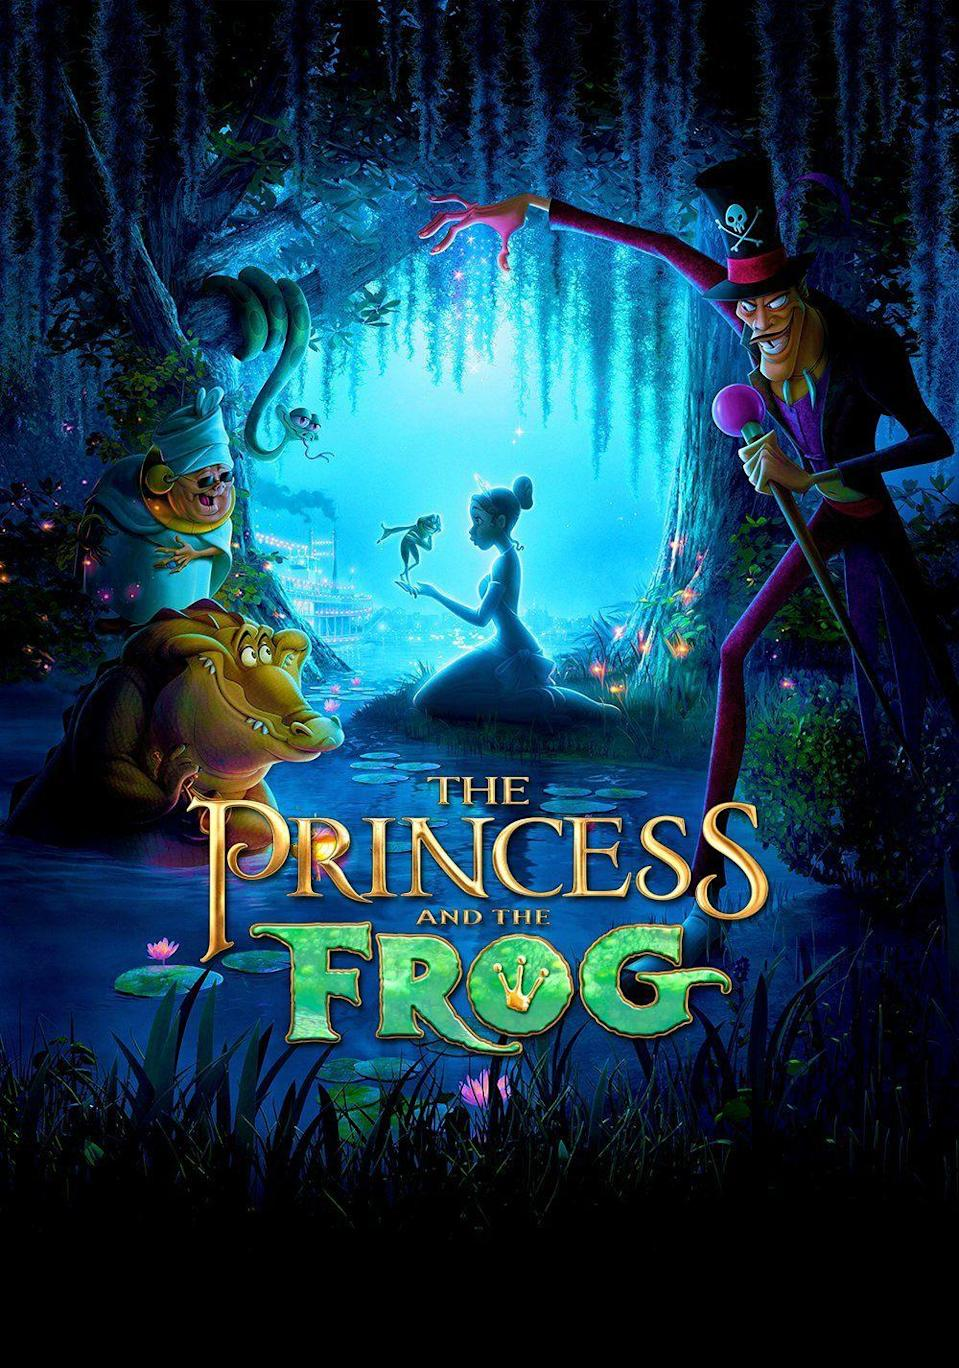 "<p><a class=""link rapid-noclick-resp"" href=""https://go.redirectingat.com?id=74968X1596630&url=https%3A%2F%2Fwww.disneyplus.com%2Fmovies%2Fthe-princess-and-the-frog%2F7TPAcC8QPGpm&sref=https%3A%2F%2Fwww.womansday.com%2Flife%2Fentertainment%2Fg32745225%2Fmovies-about-race-racism-kids%2F"" rel=""nofollow noopener"" target=""_blank"" data-ylk=""slk:STREAM NOW"">STREAM NOW</a></p><p>Though this New Orleans-set Disney adaptation of the classic fairytale doesn't overtly discuss race, the movie (which features Disney's first black princess, Tiana) will definitely inspire conversations about the importance of representation and diversity. </p>"